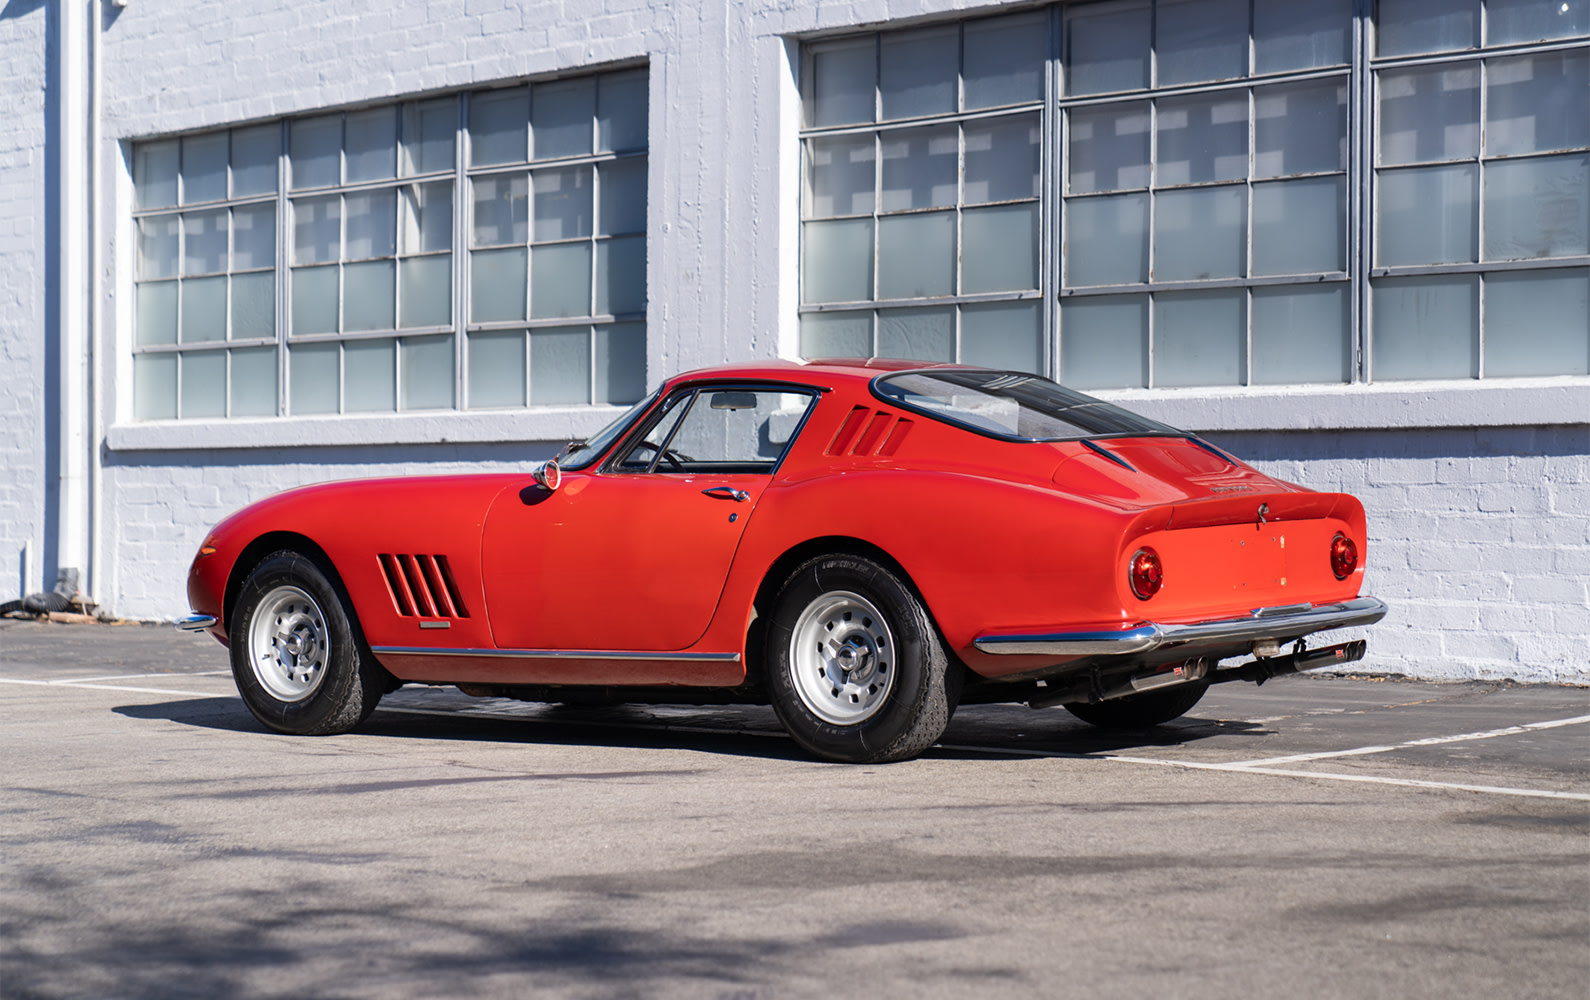 Ferrari 275 GTB Long Nose rear three-quarter